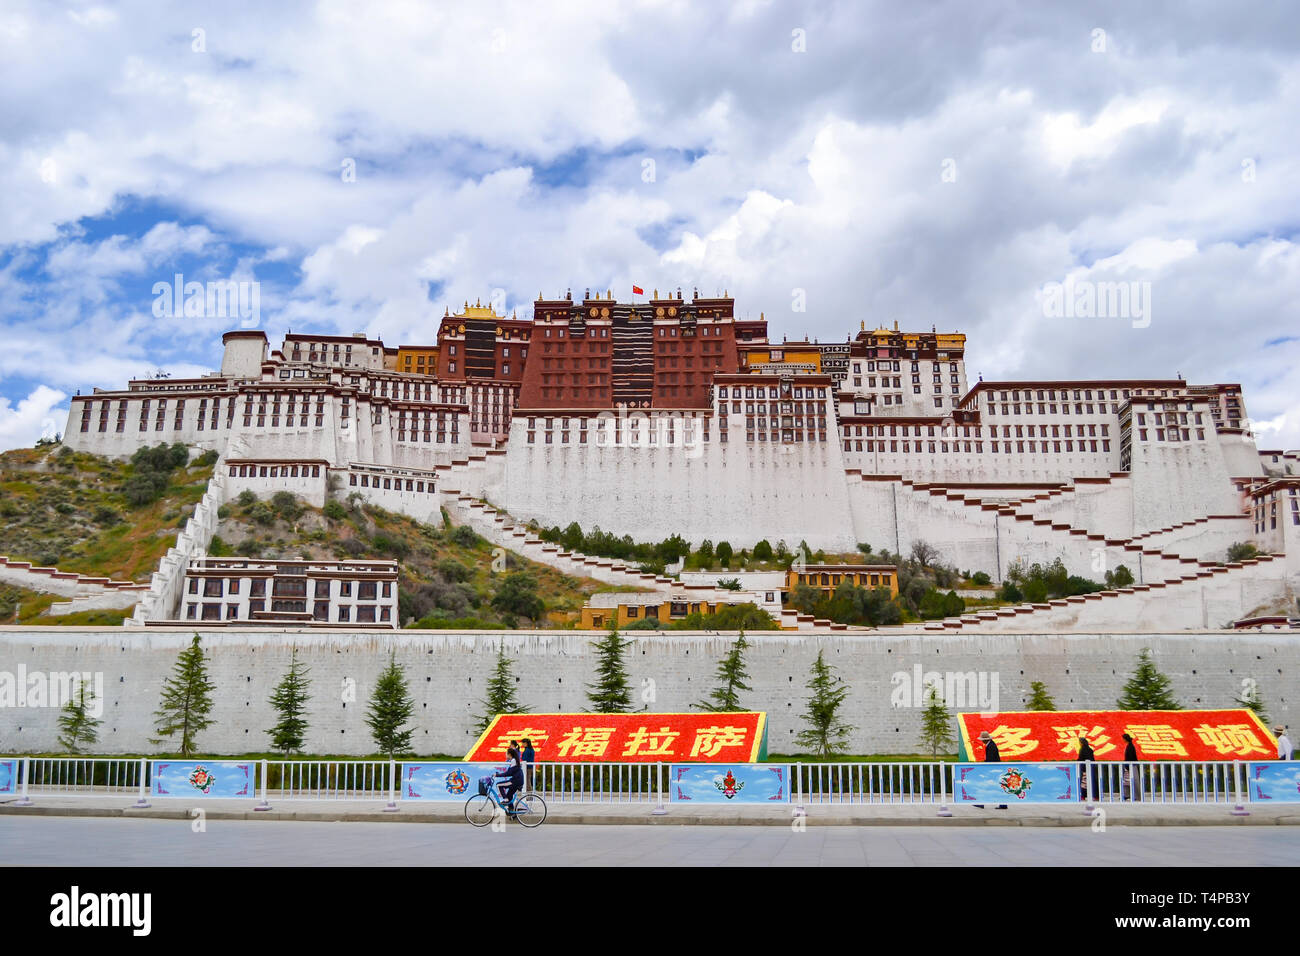 Potala Palace, the original residence of the Dalai Lama and the most important architecture of Tibetan Buddhism in Lhasa, Tibet, China - Stock Image